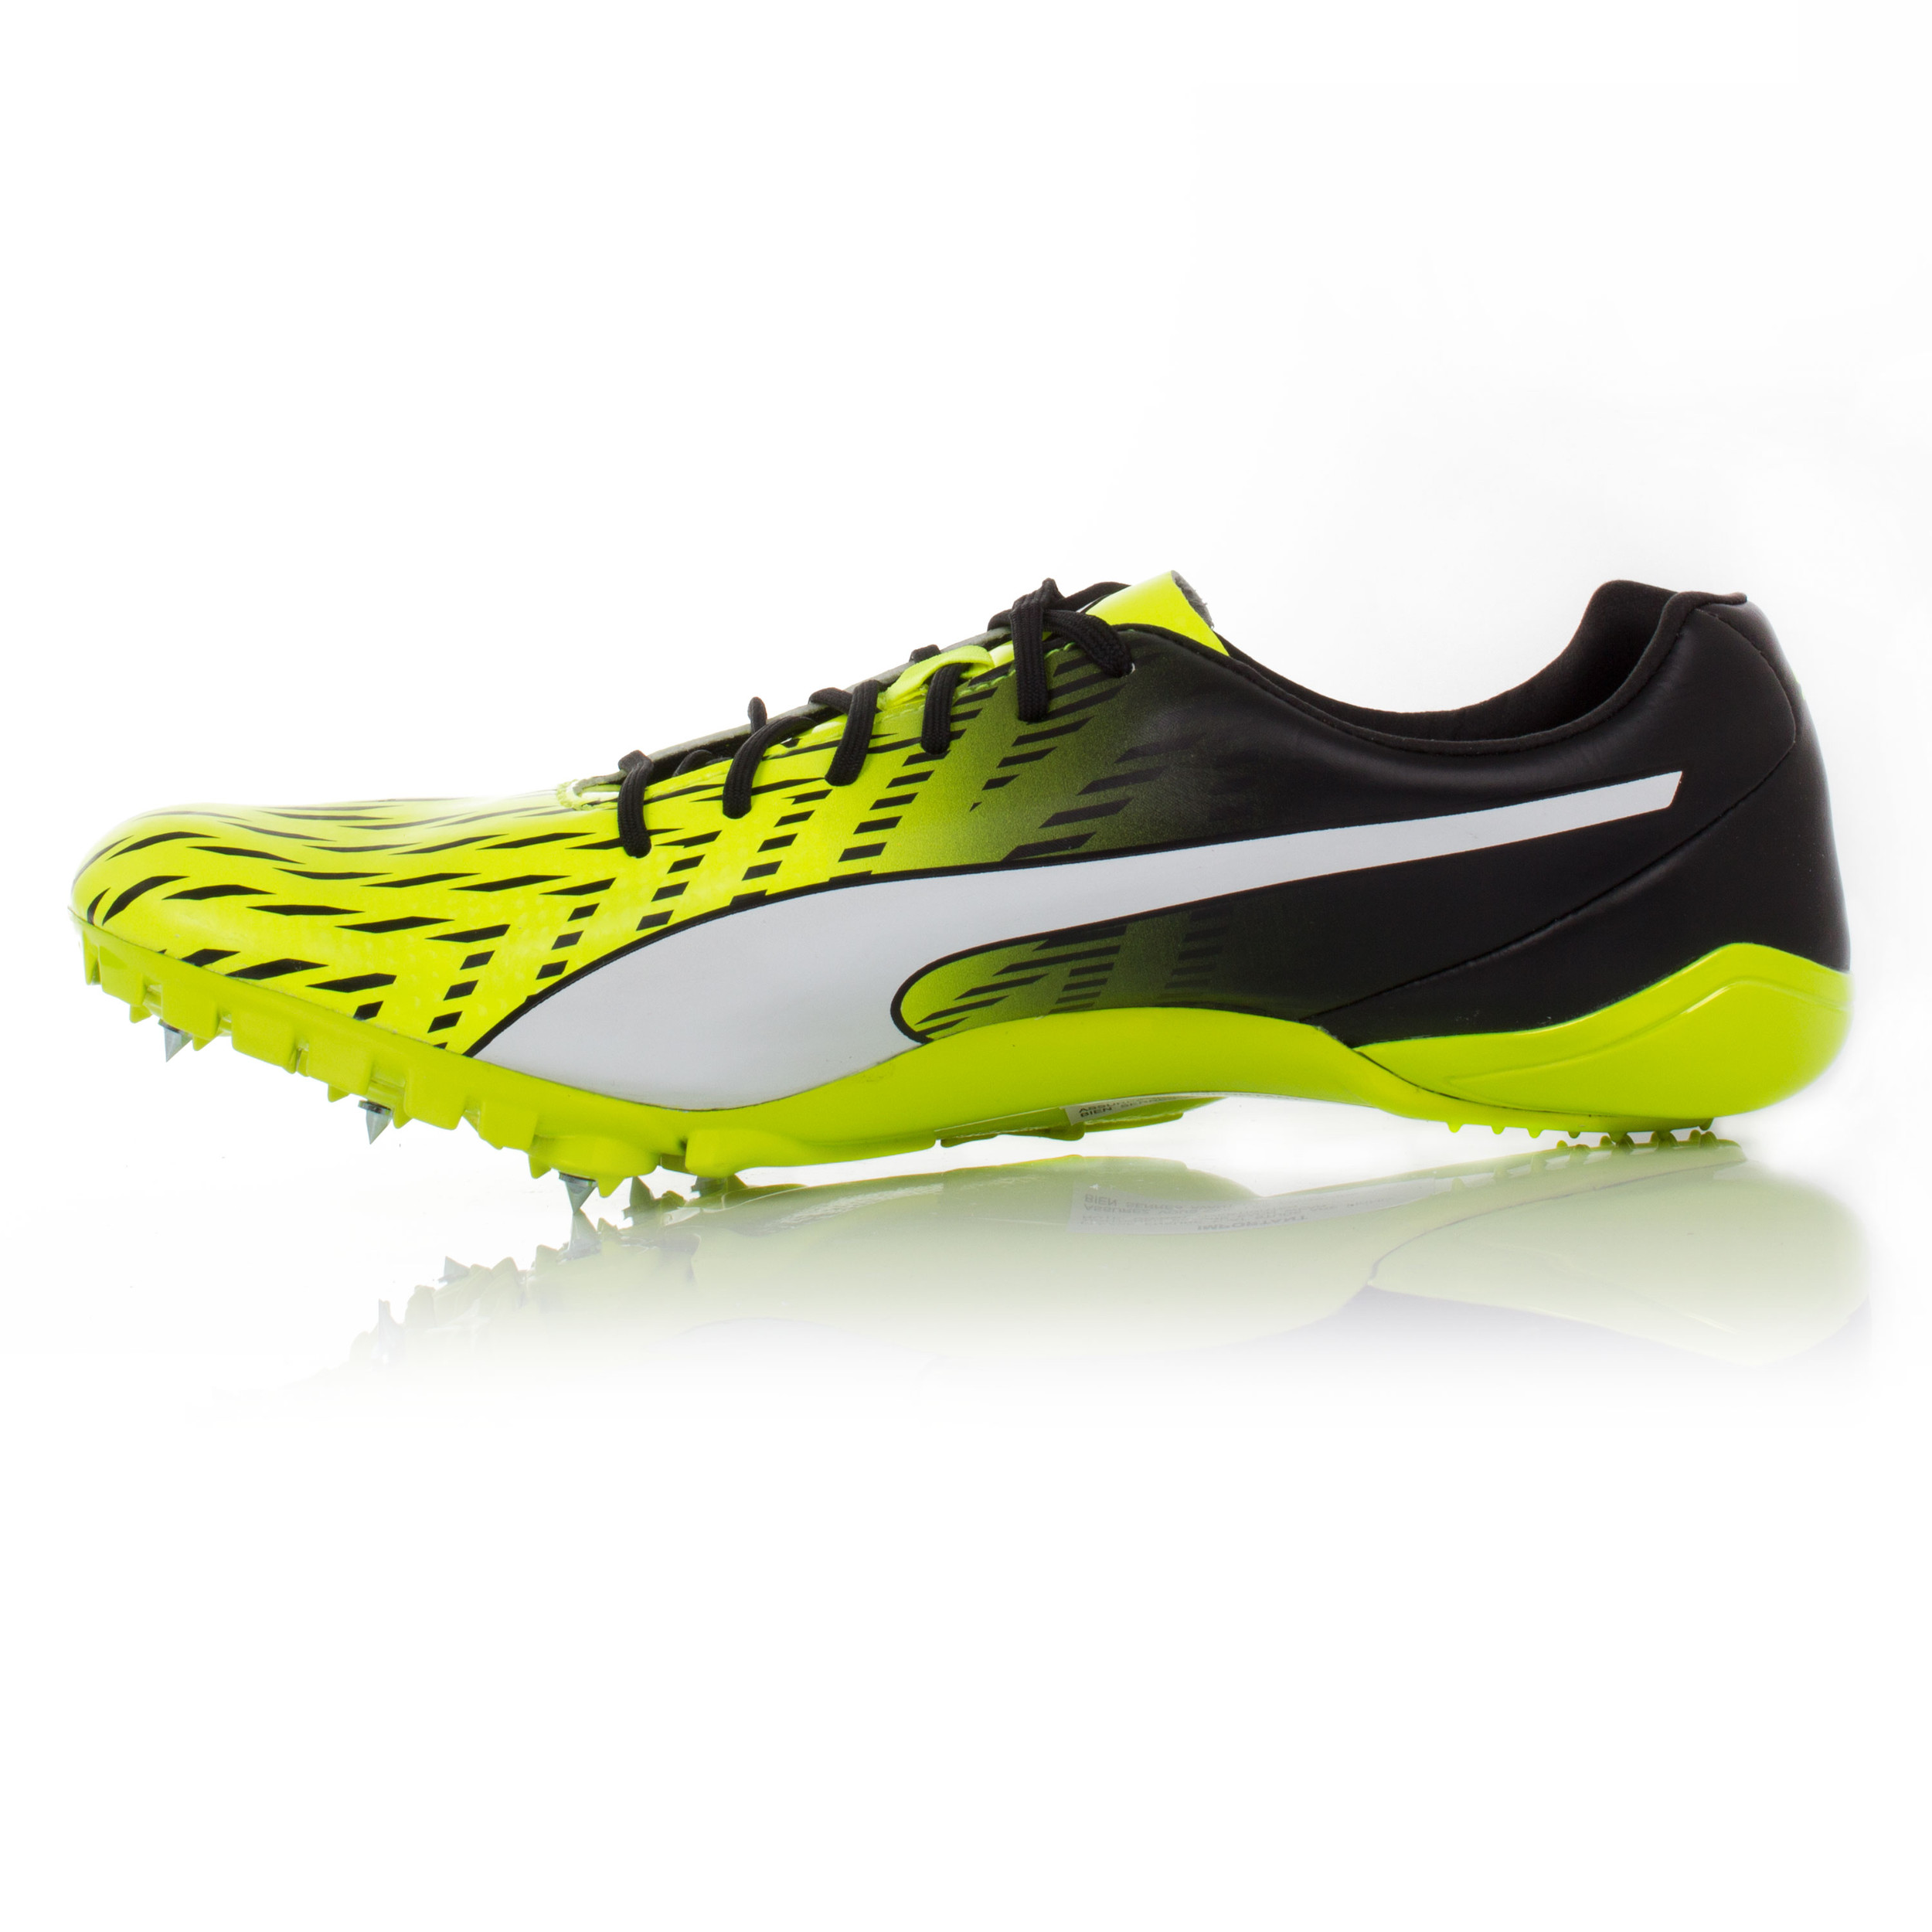 puma running spike shoes price in india